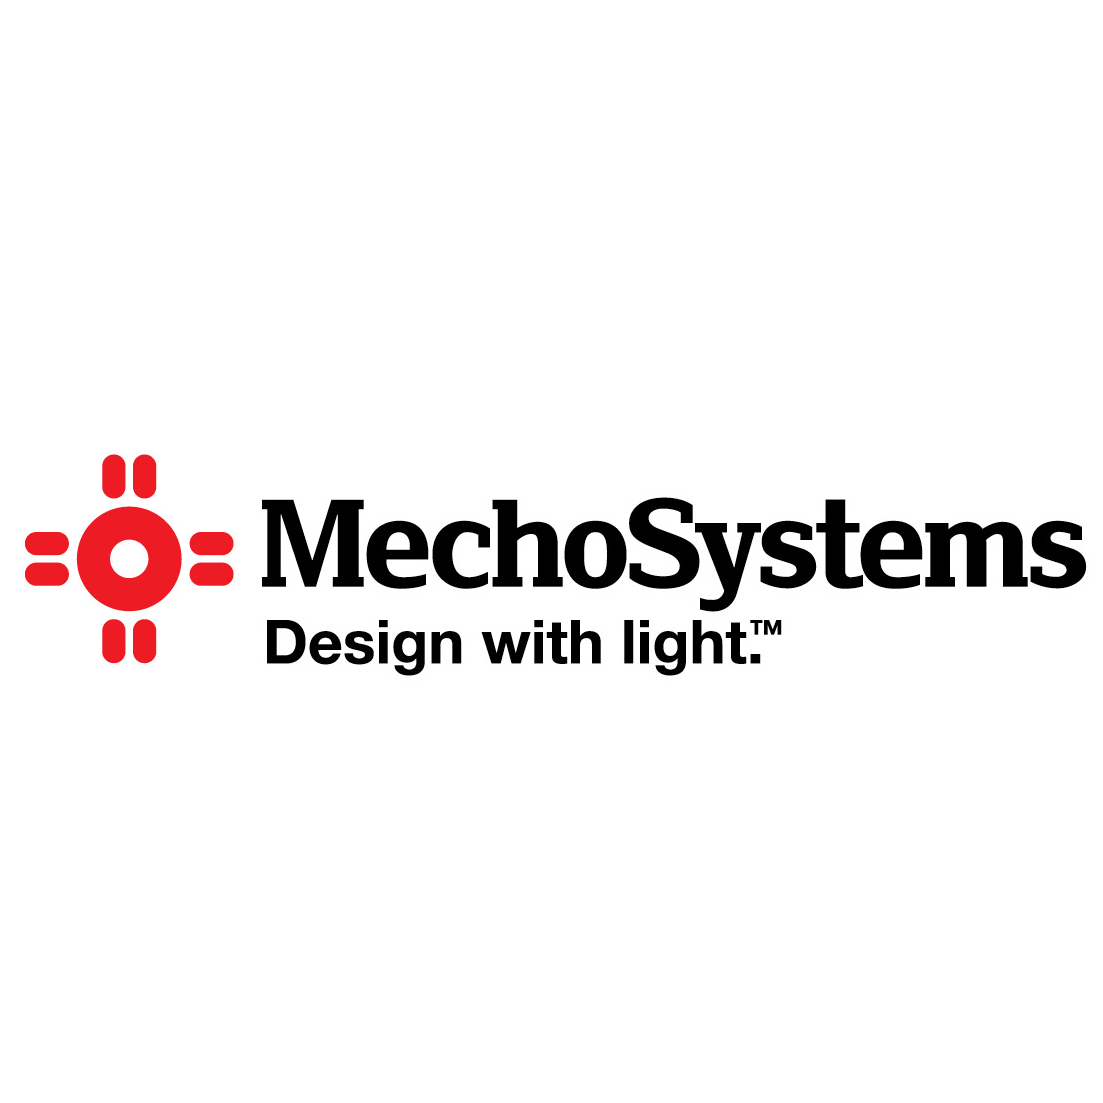 MechoSystems